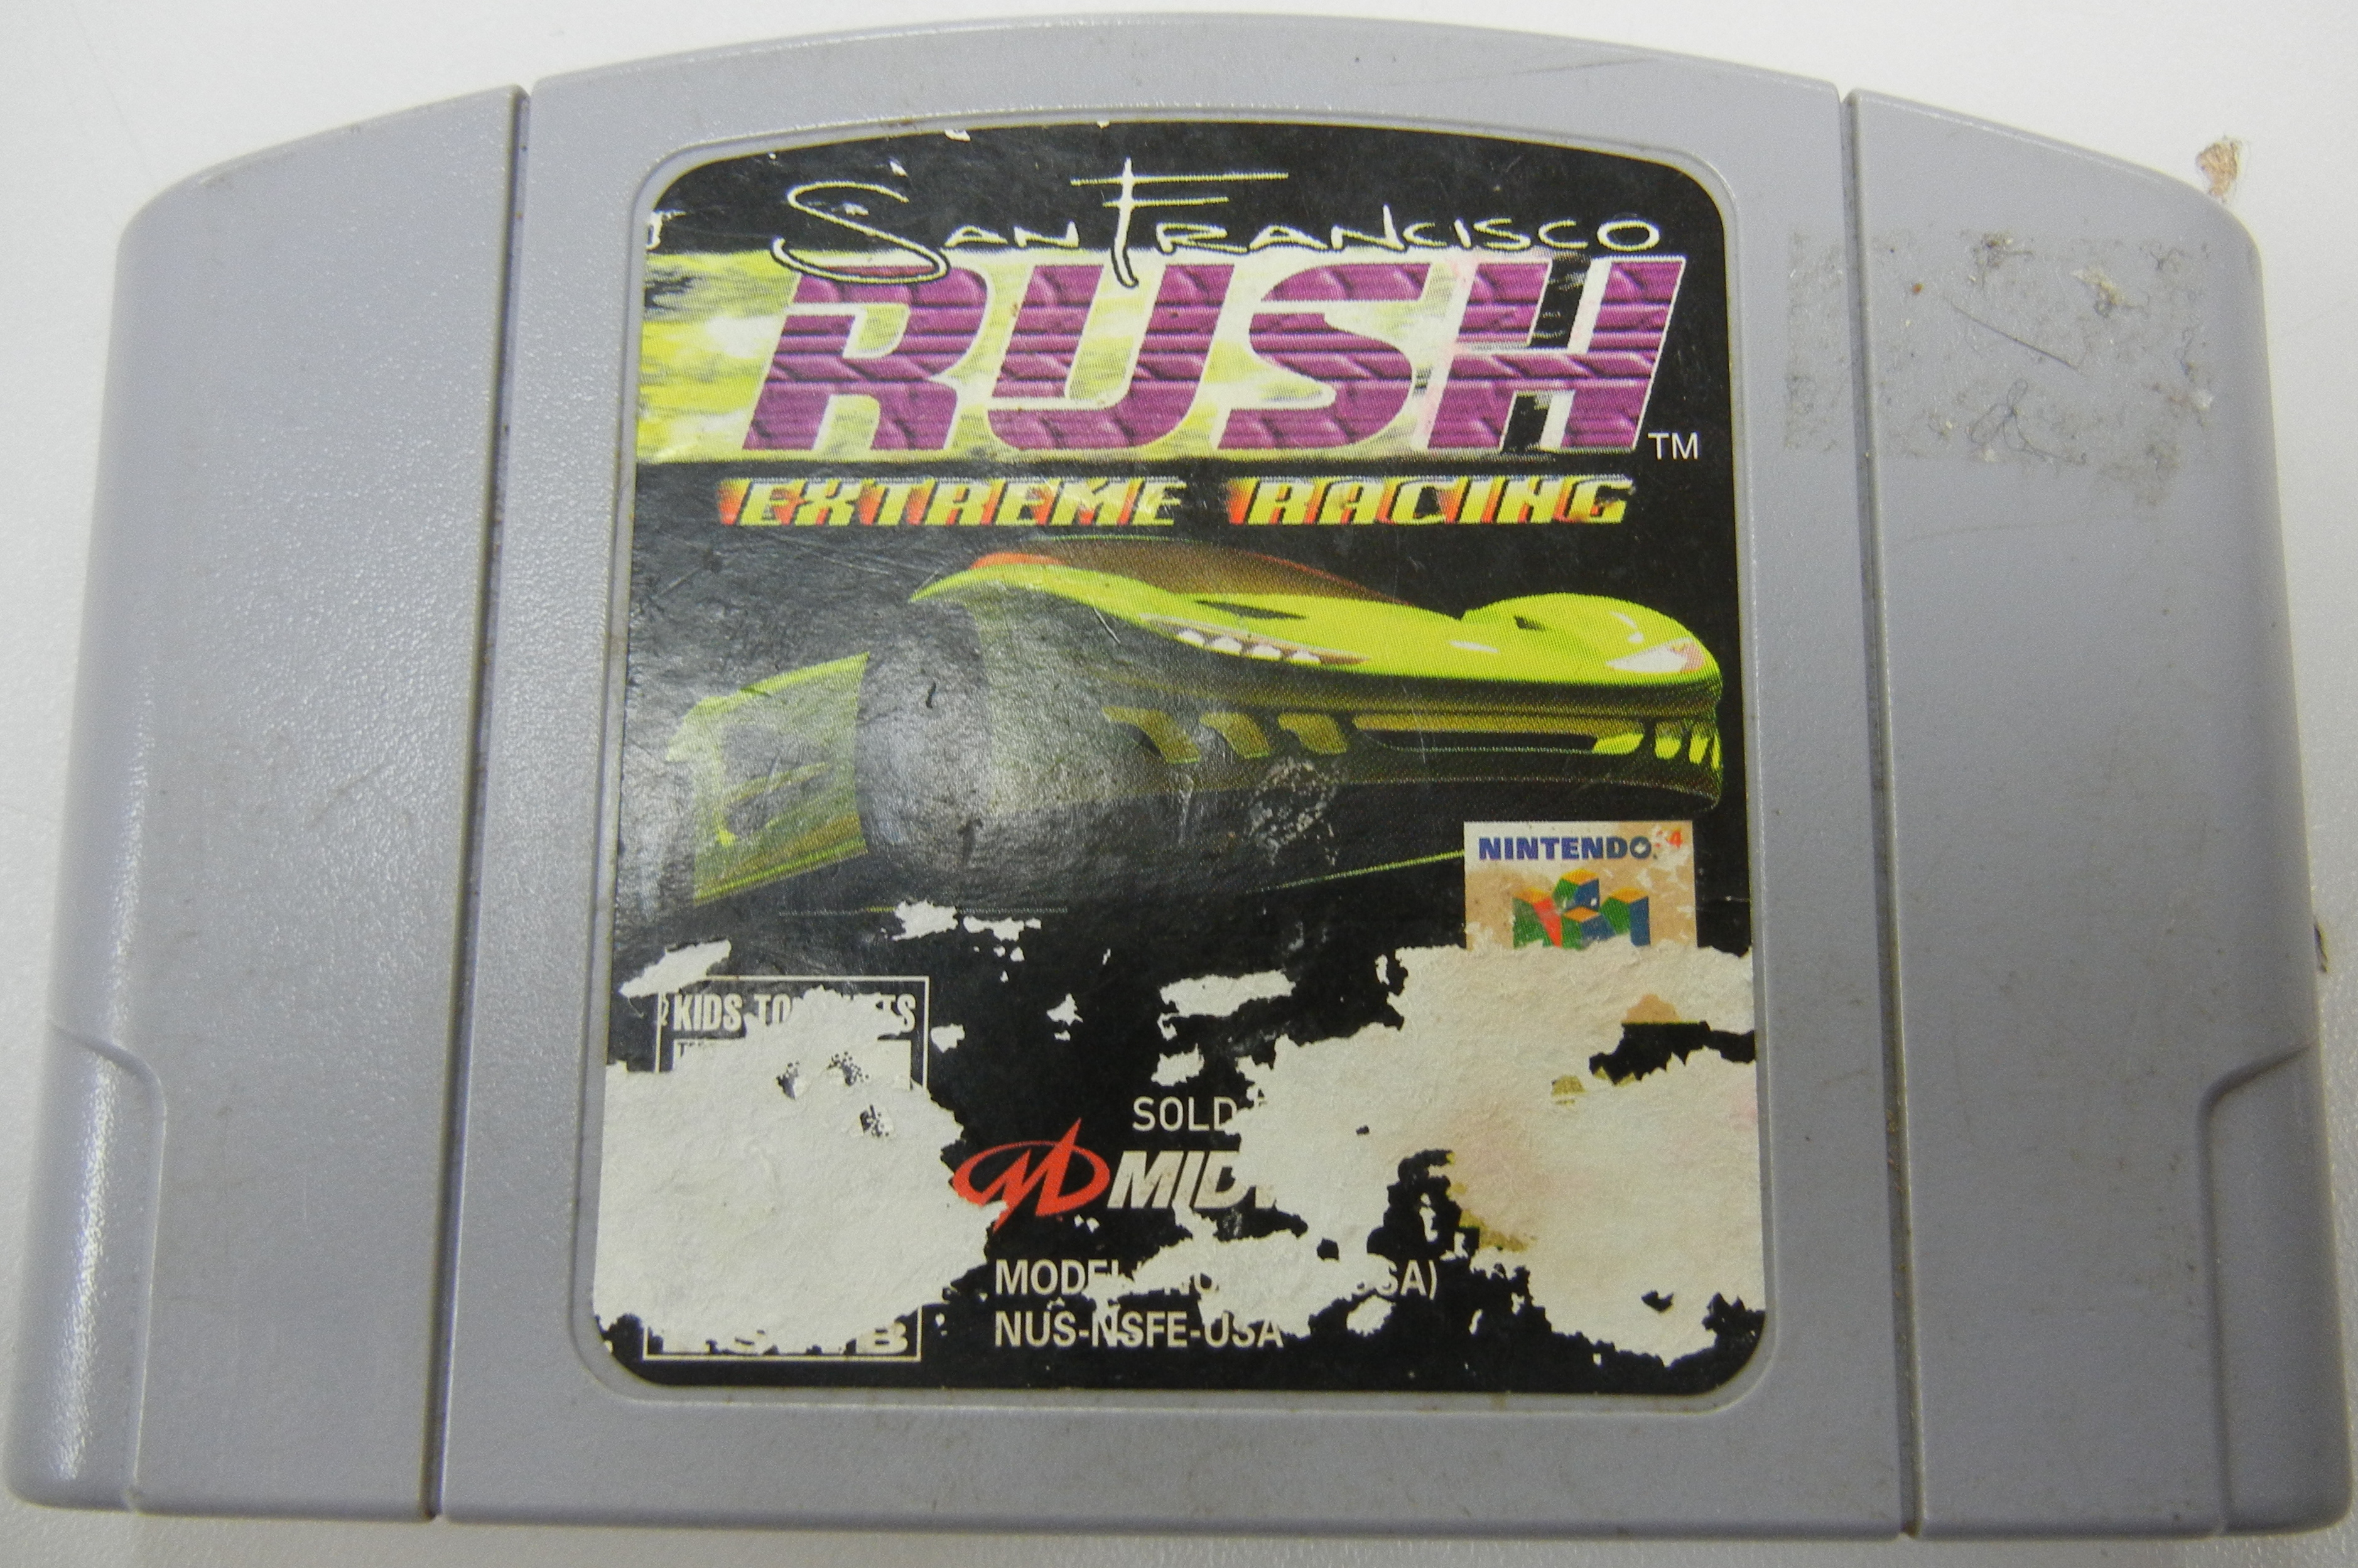 SAN FRANCISCO RUSH EXTREME RACING NINTENDO 64 GAME